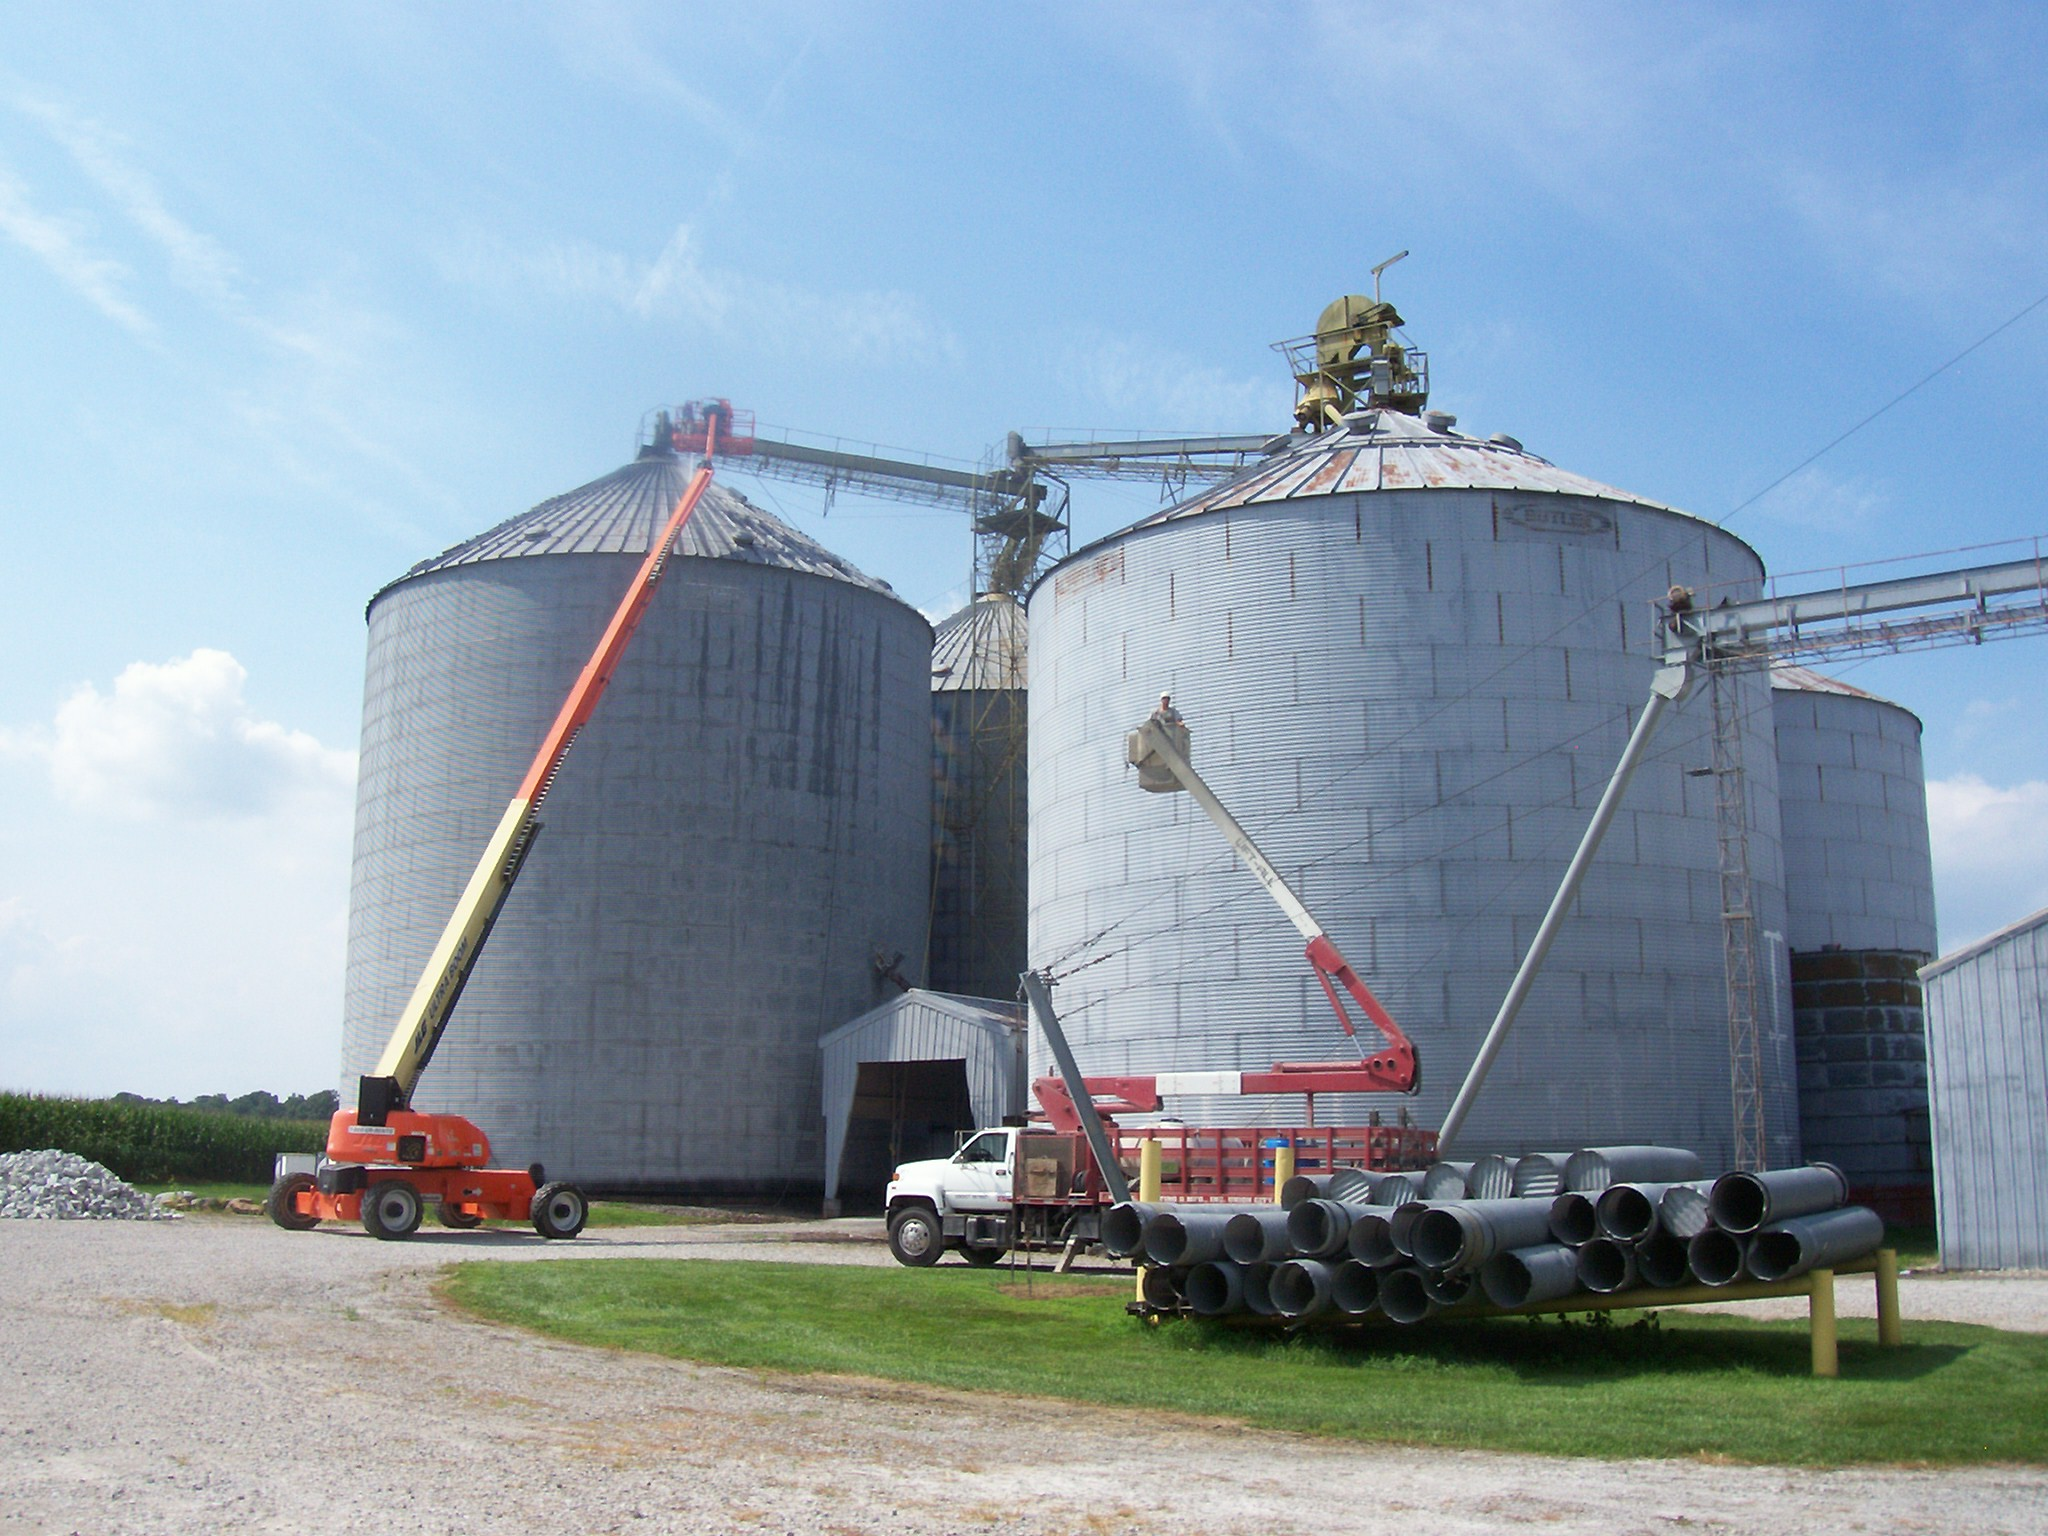 Commercial painter for agriculture gray bins